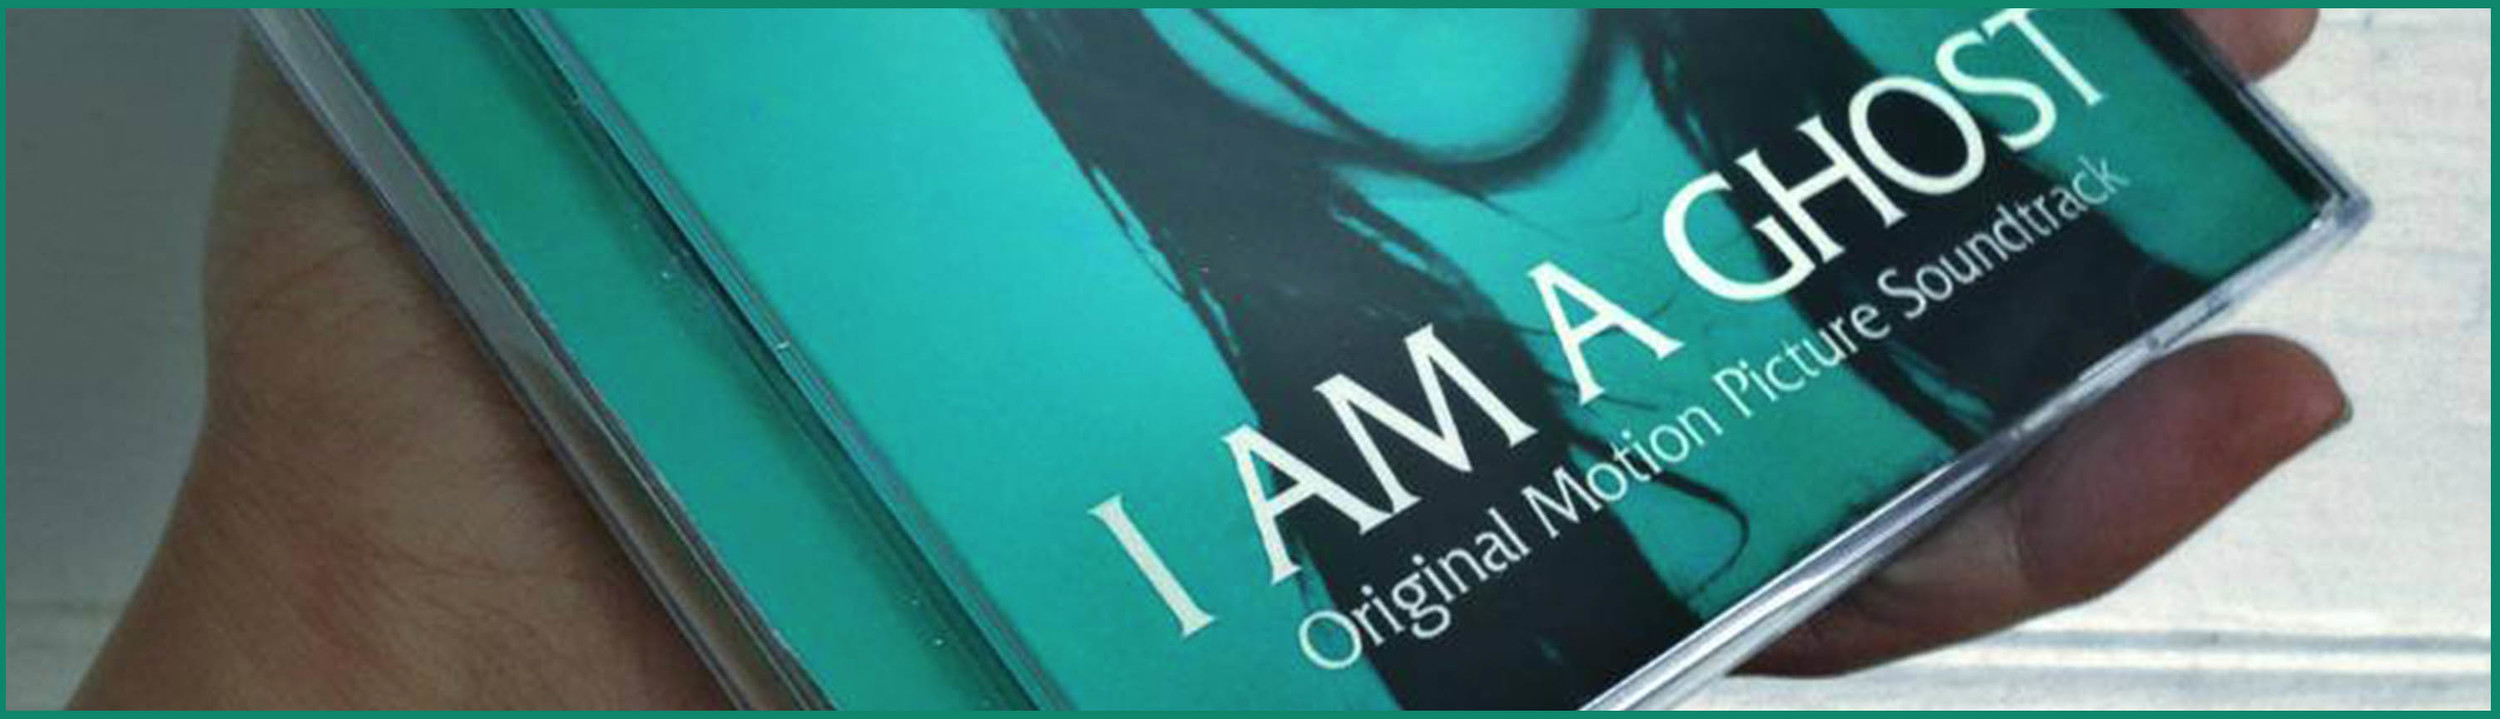 Buy the I Am a Ghost Original Motion Picture Soundtrack    Also available on iTunes